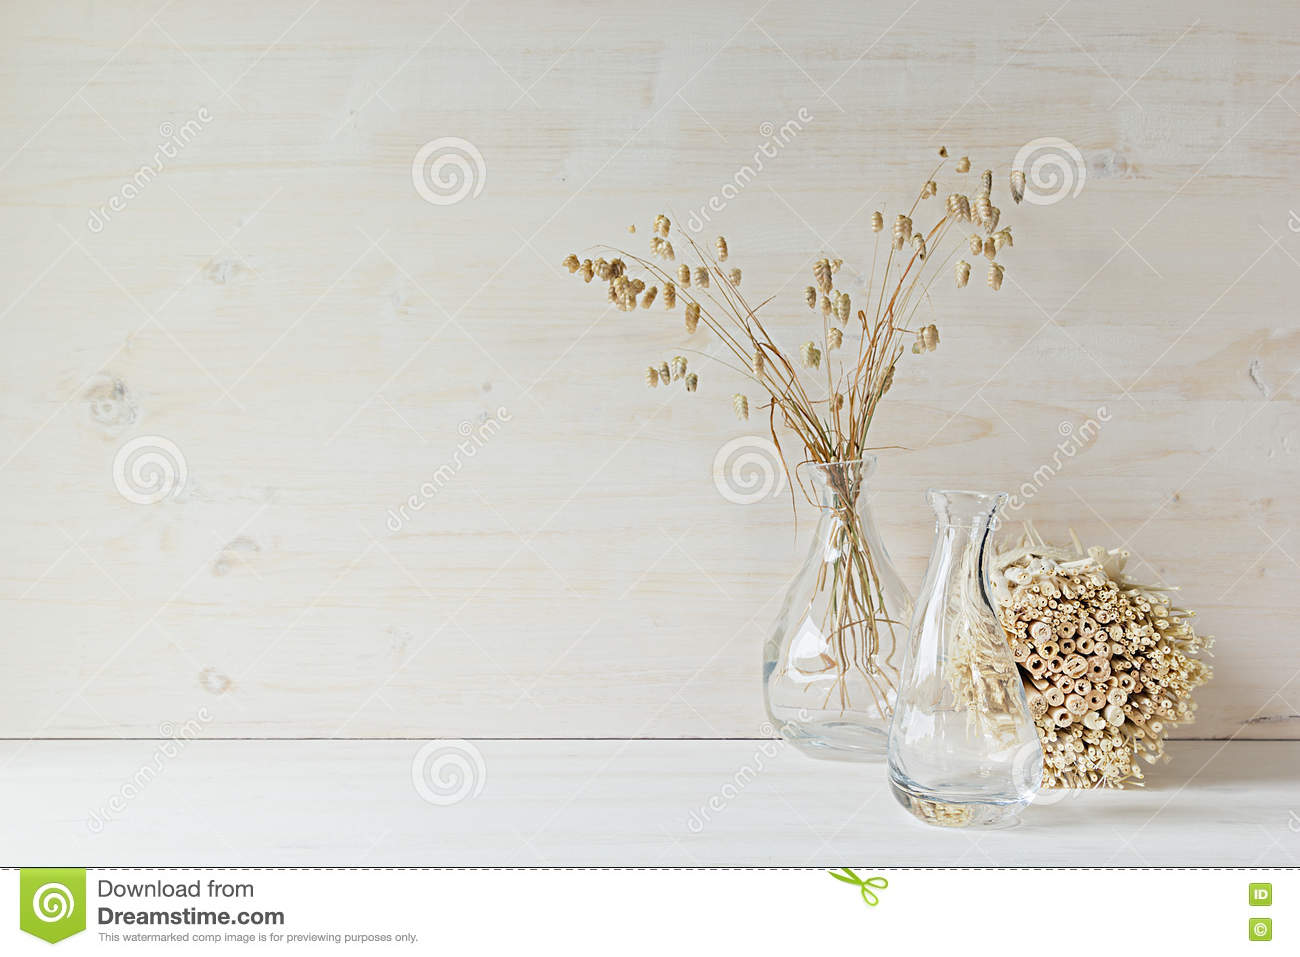 Soft Home Decor Of Glass Vase With Spikelets And Stalks On